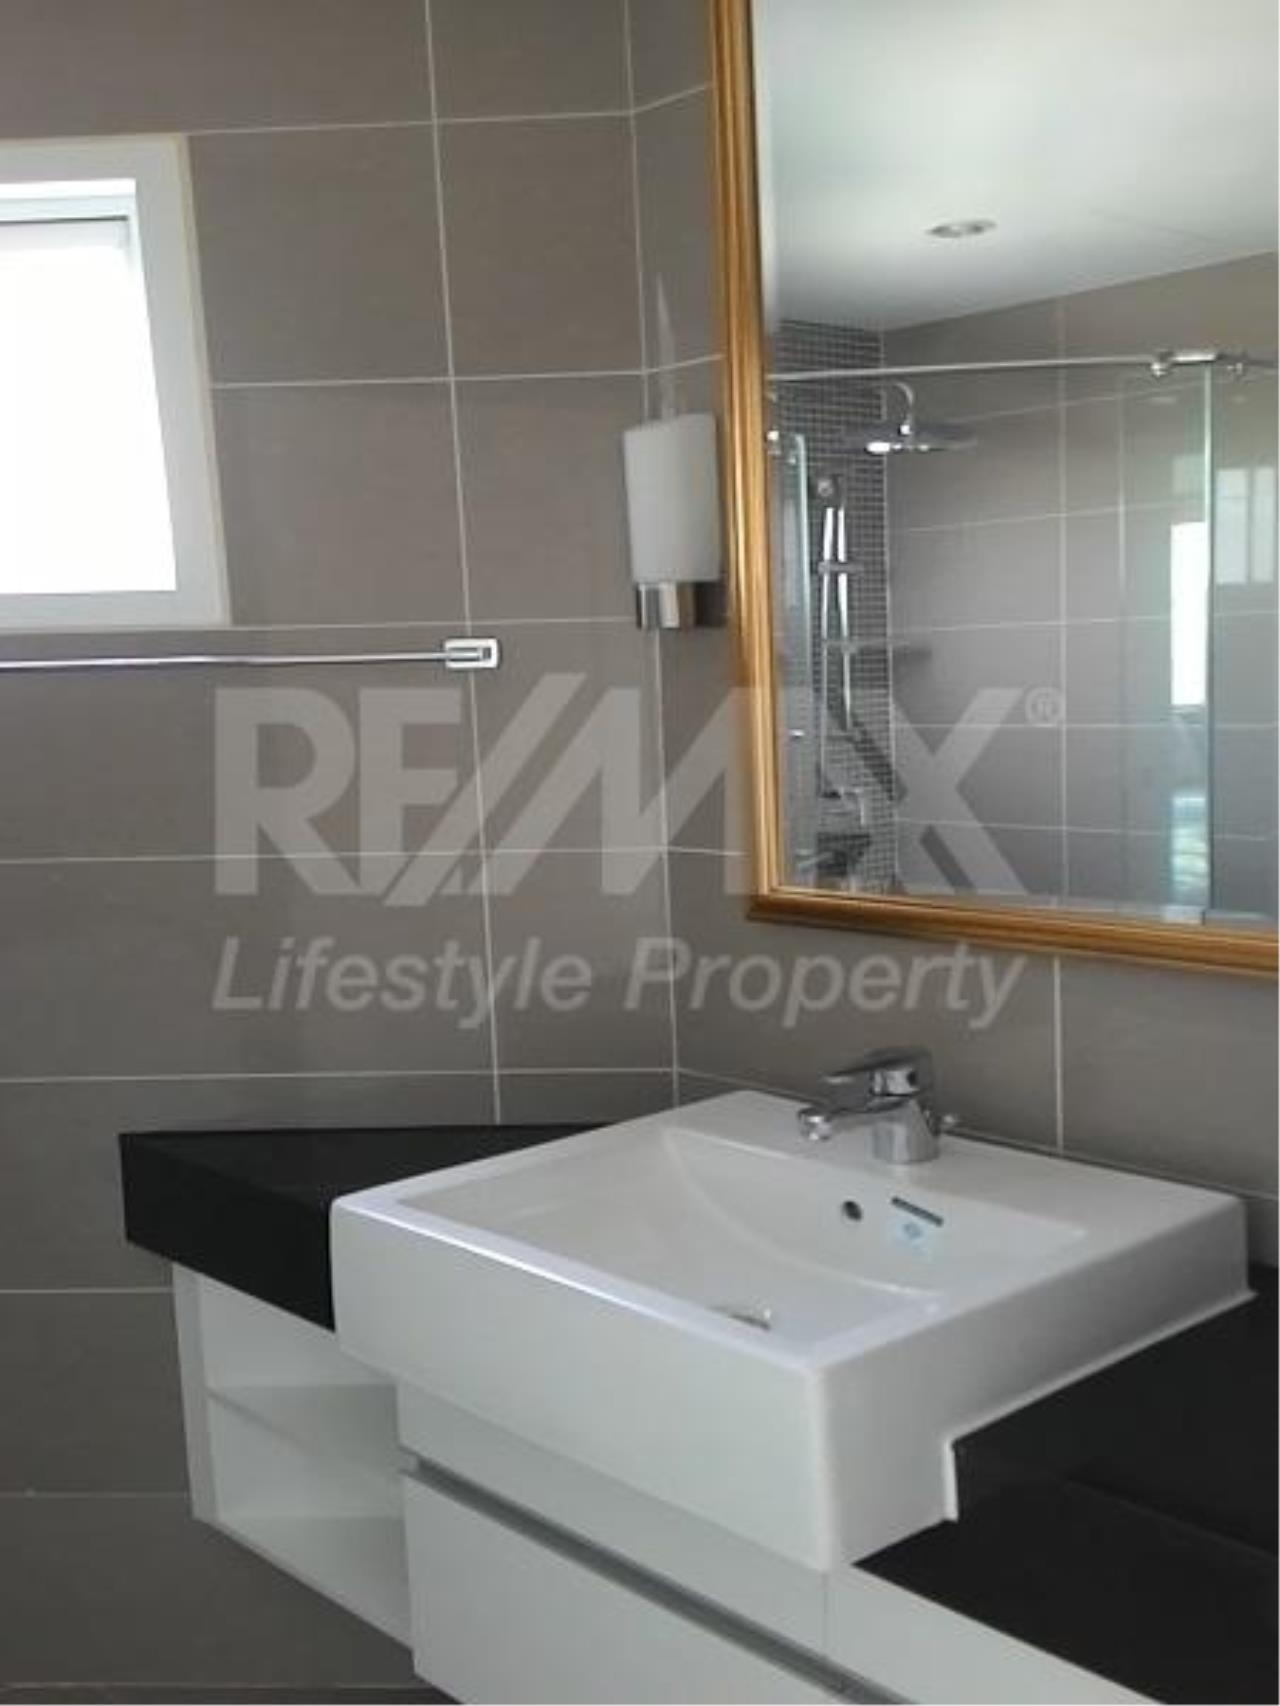 RE/MAX LifeStyle Property Agency's Supalai Wellington 6